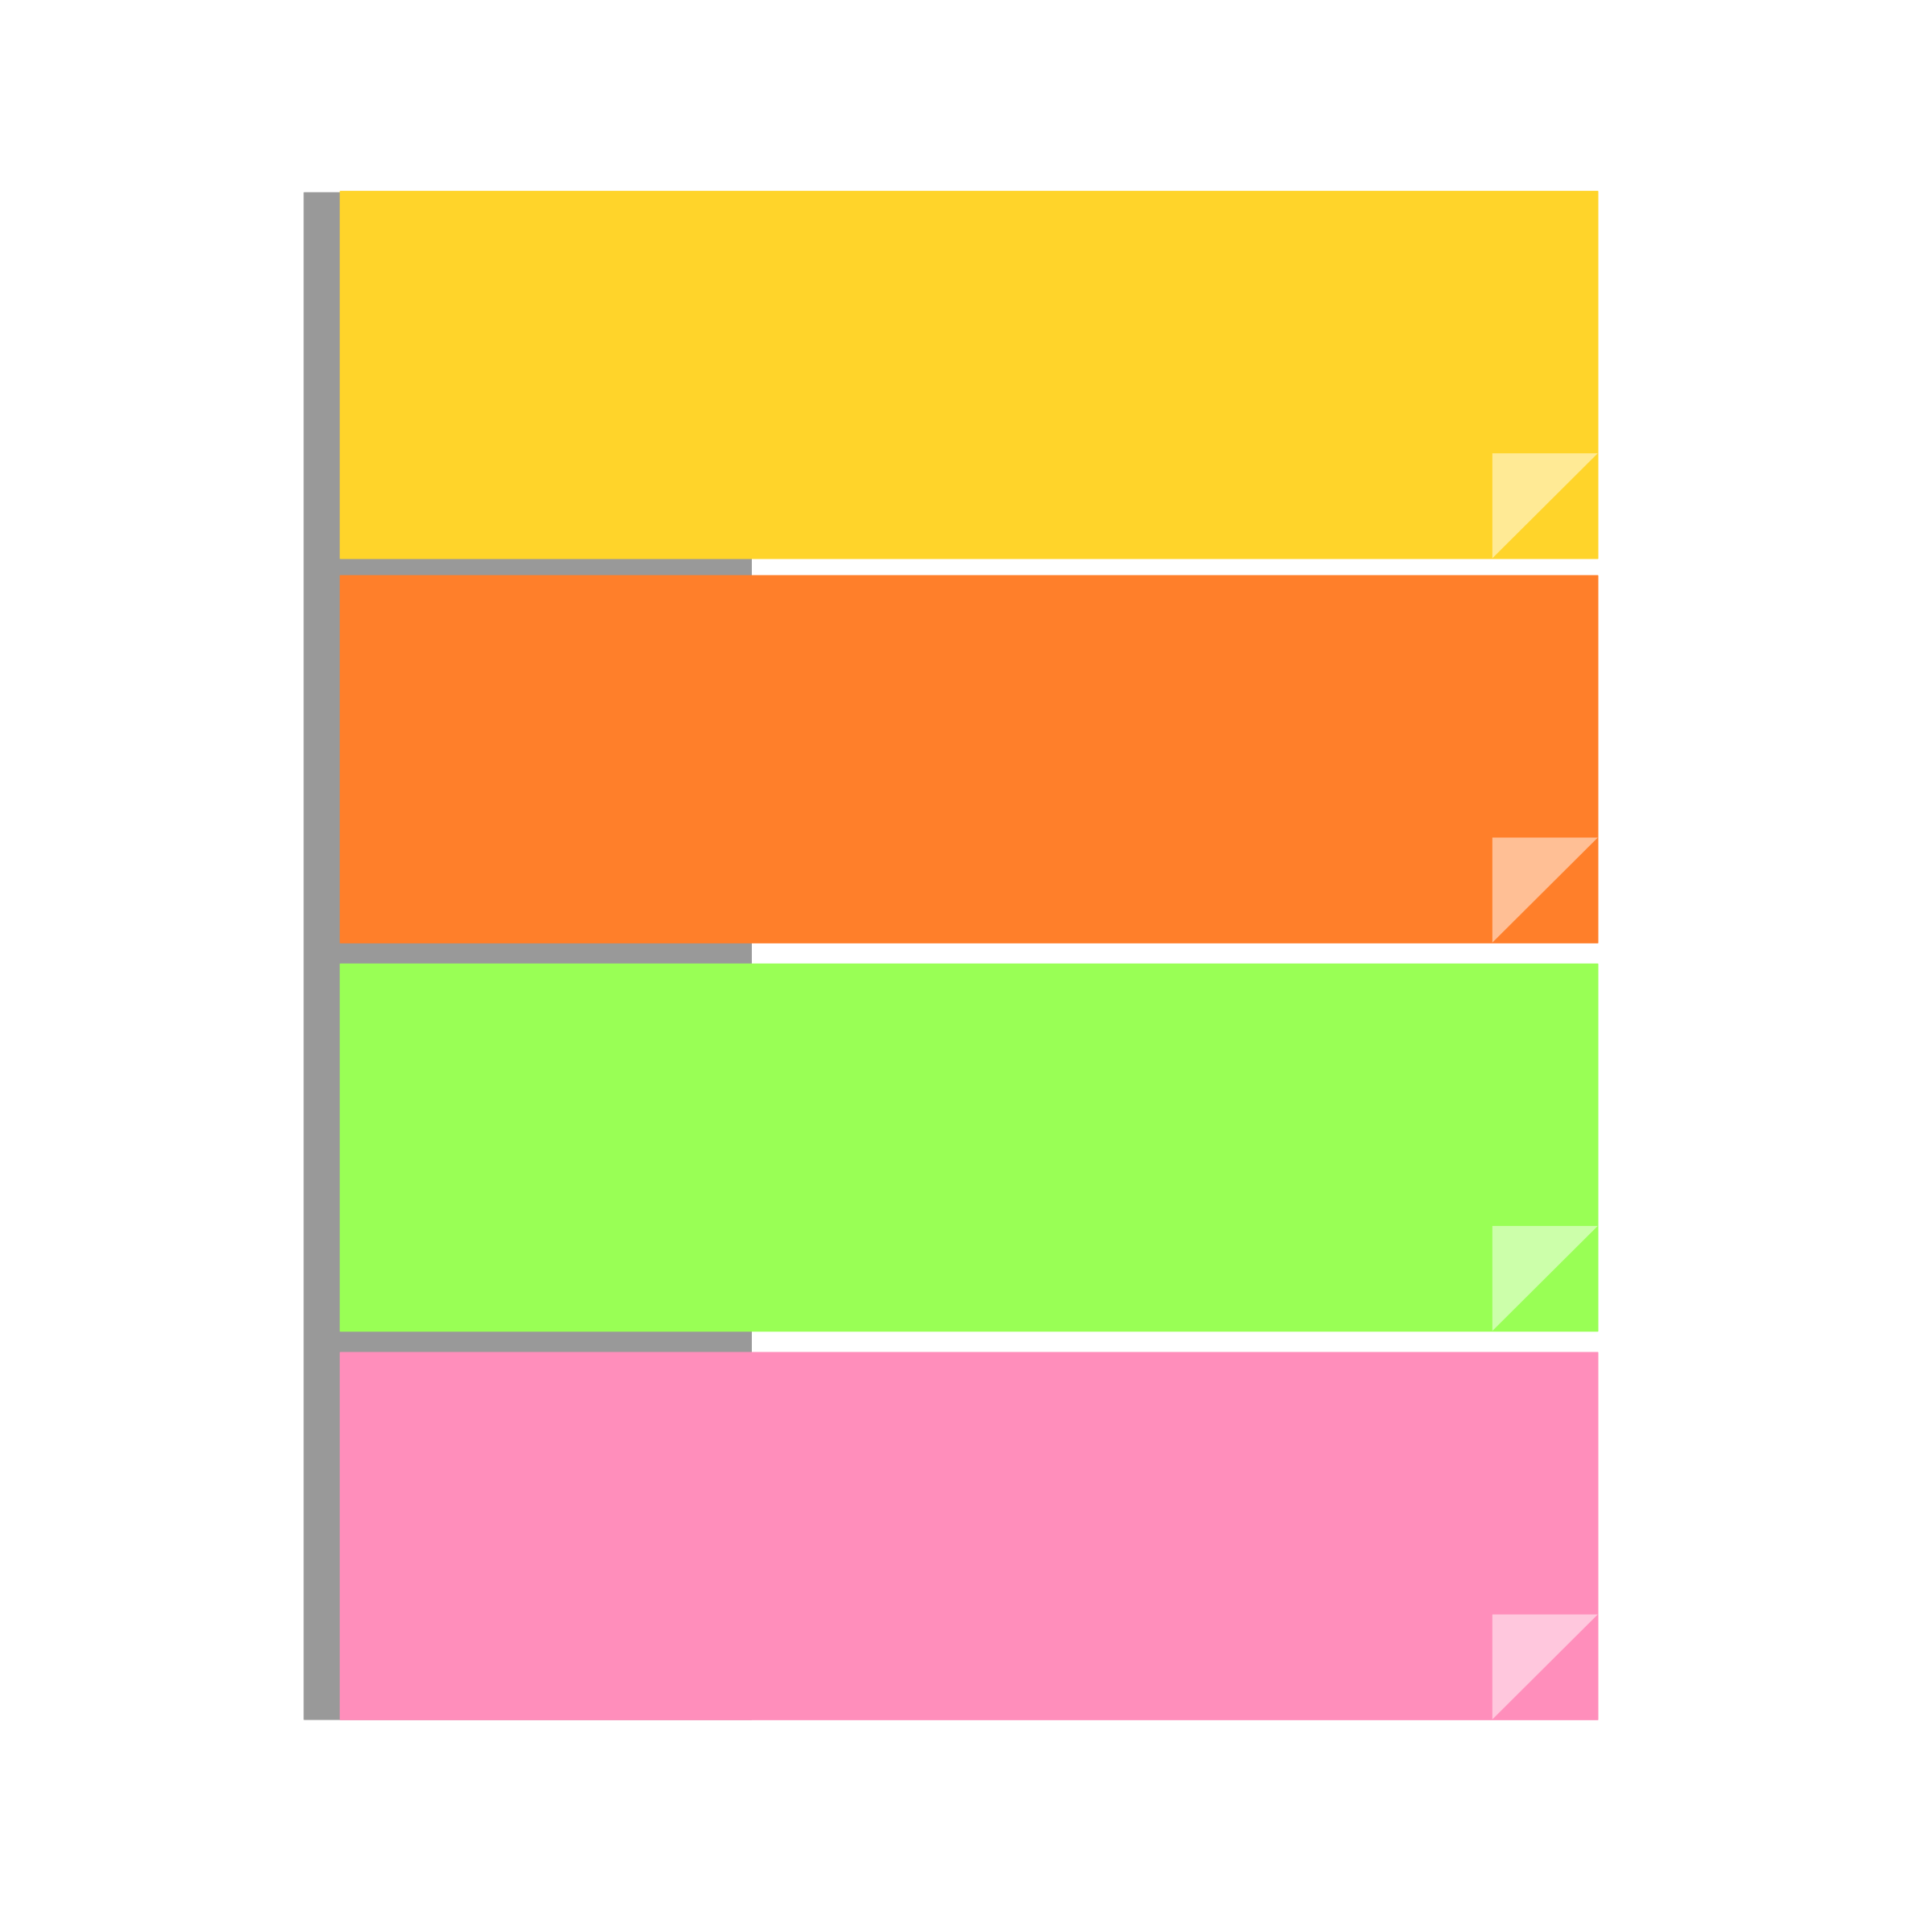 Clipart office stationery sticky. Colorful post it notes png image freeuse library